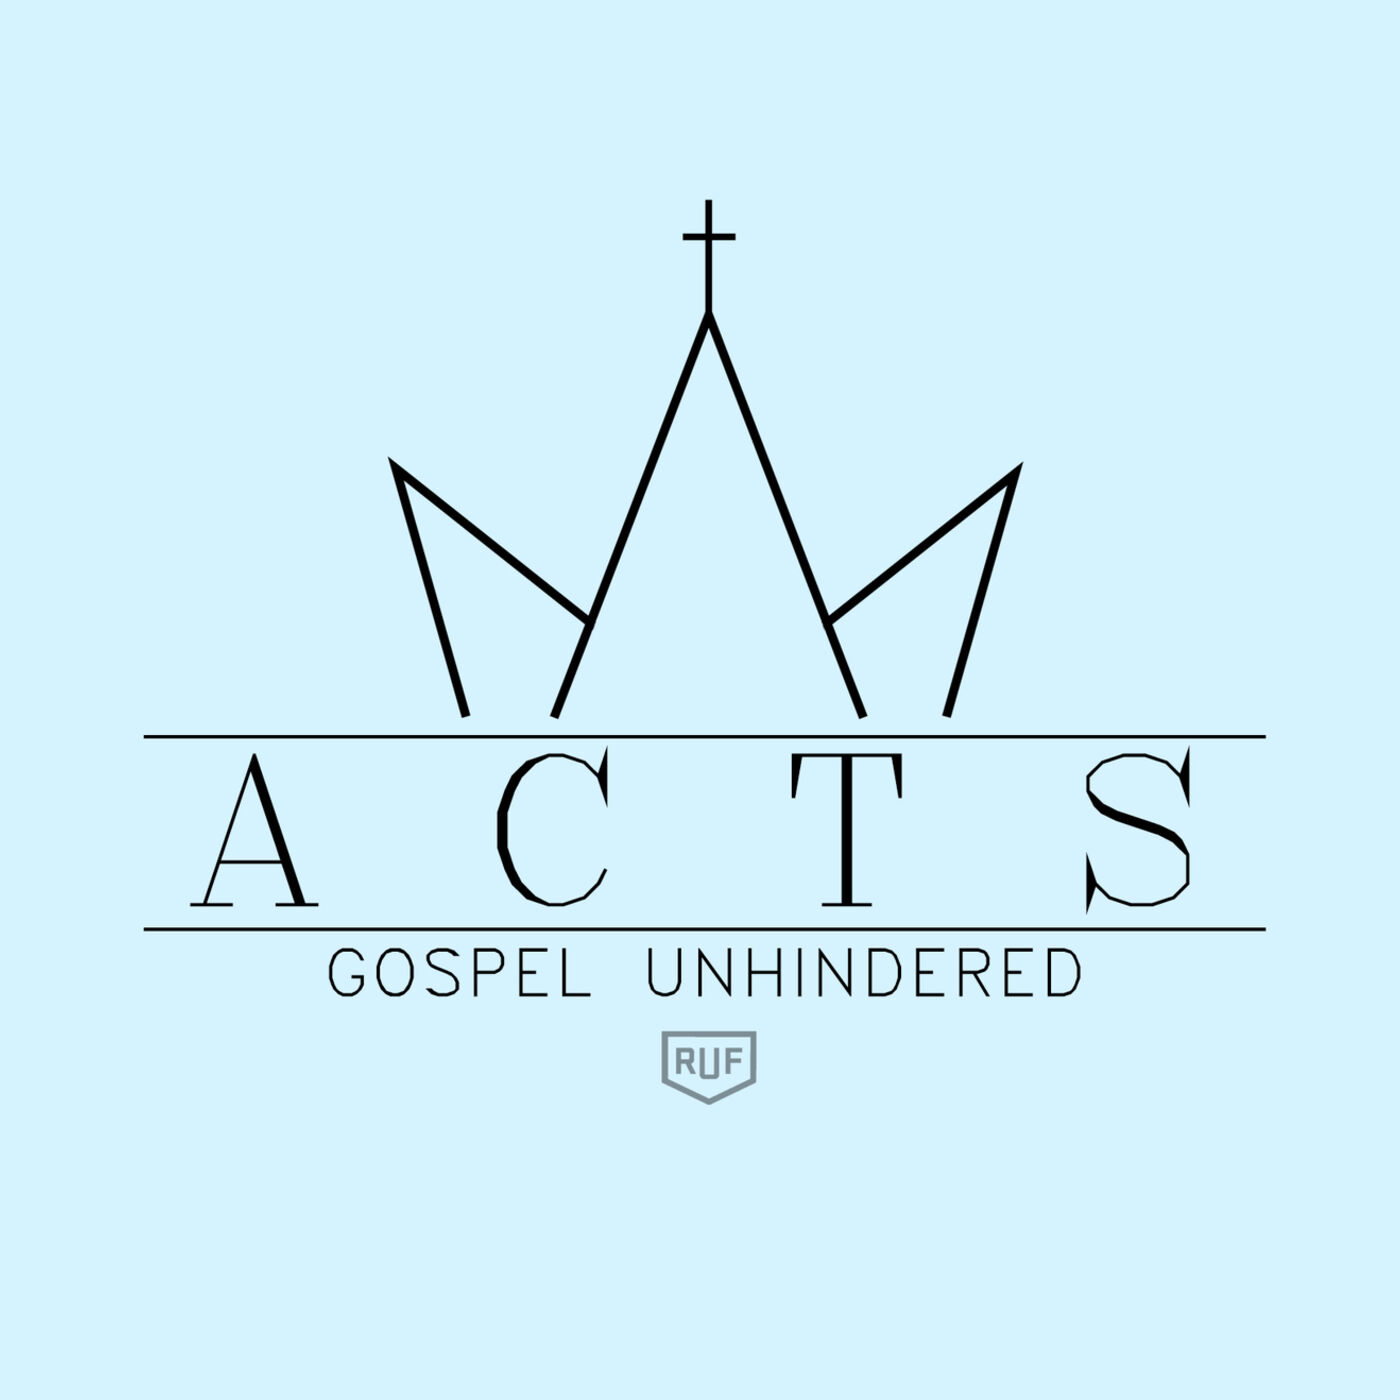 Gospel Unhindered 01 - Acts 1:1-11 - Mission Command